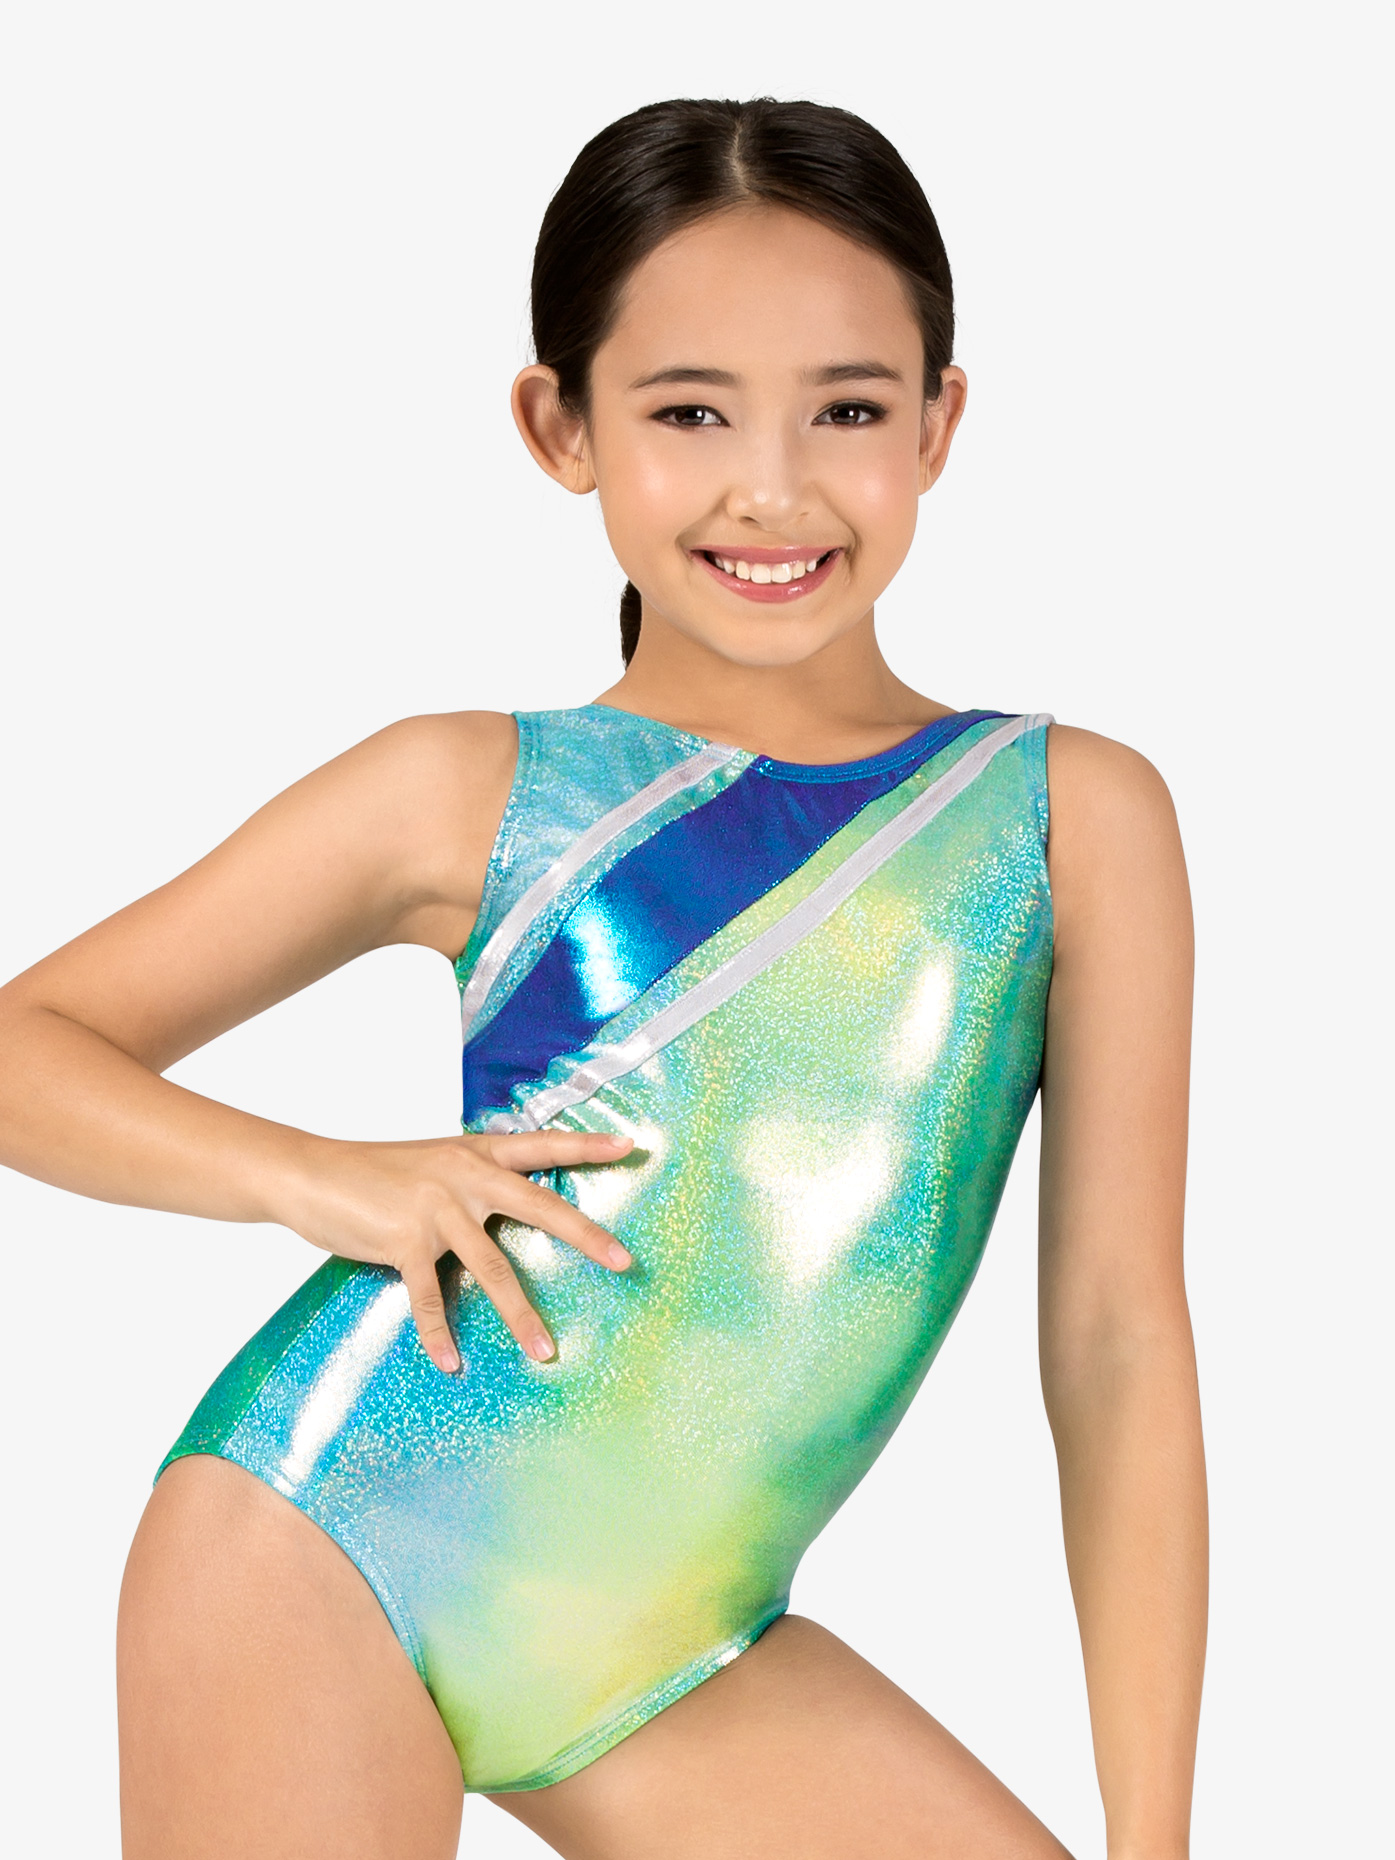 Perfect Balance Girls Gymnastics Glitter Print Strappy Back Tank Leotard G720C